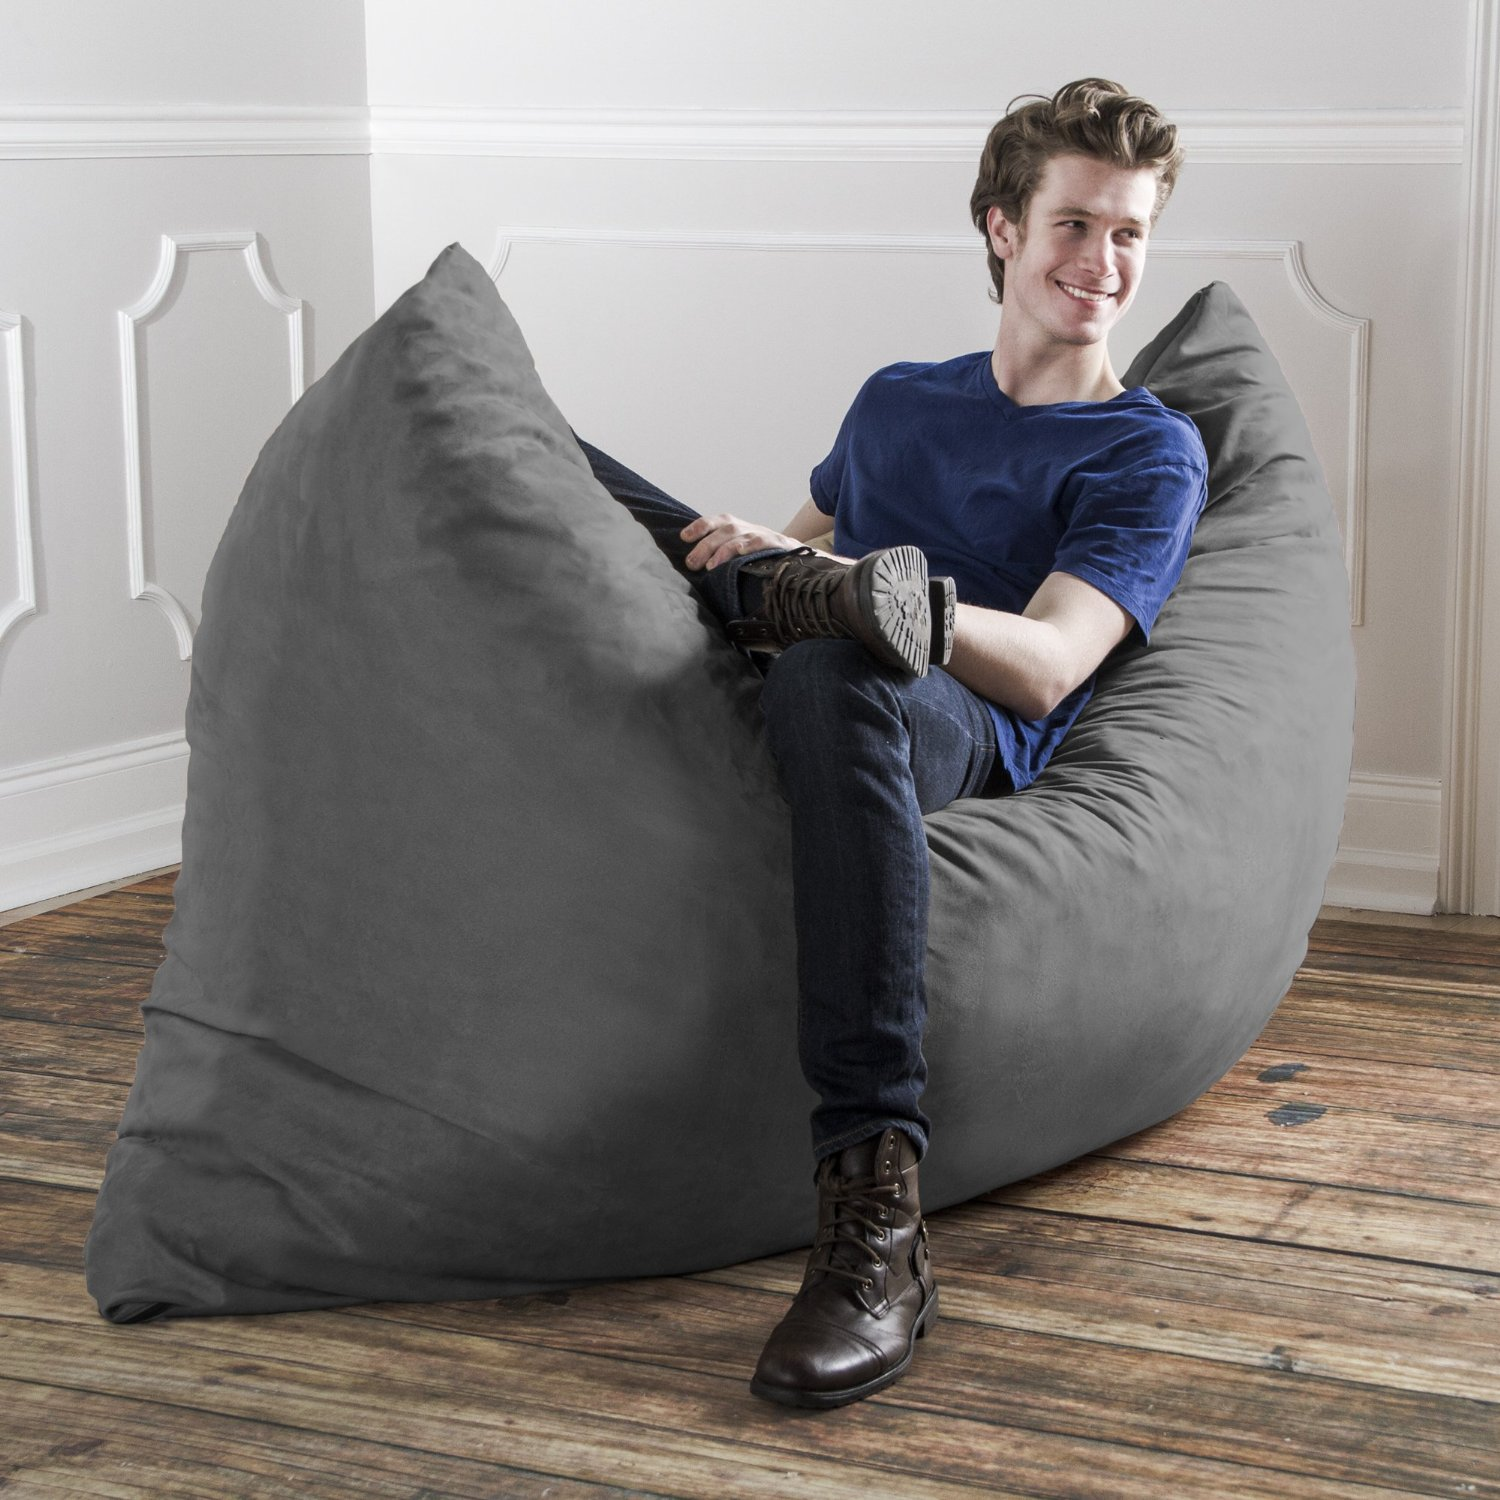 Jaxx Pillow Saxx 5.5' Giant Bean Bag Pillow, Charcoal